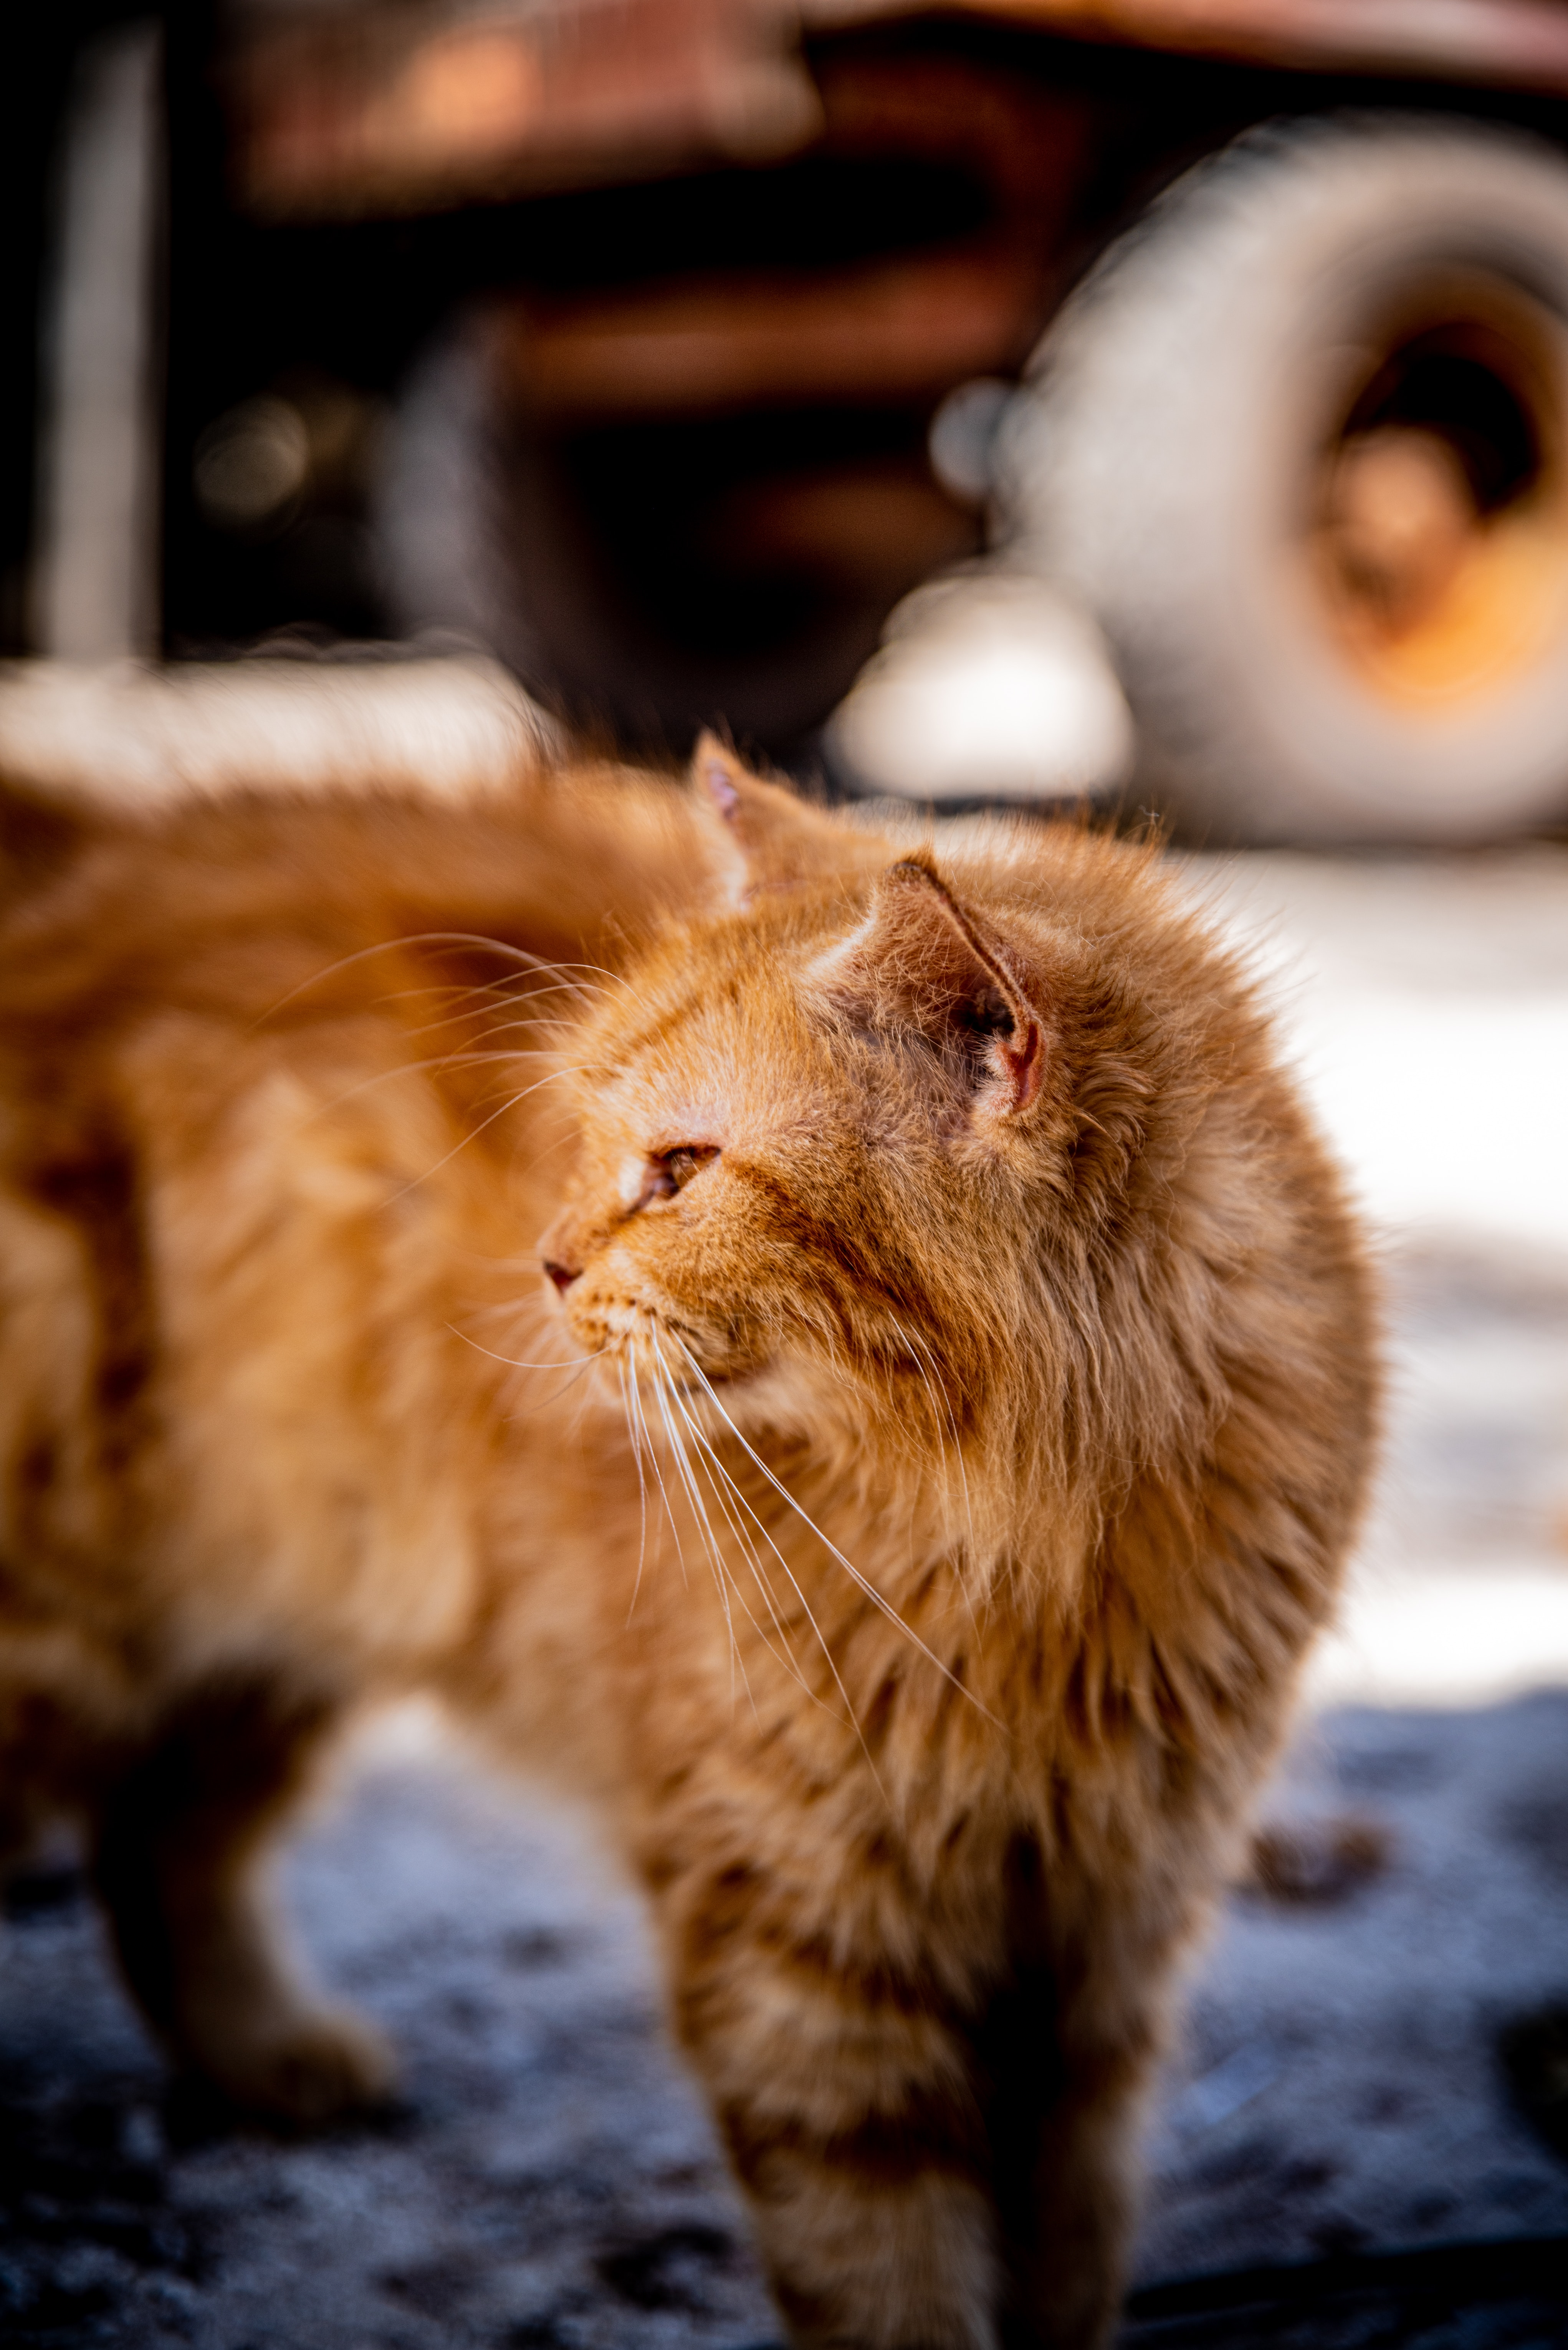 100337 download wallpaper Animals, Cat, Redhead, Fluffy, Pet screensavers and pictures for free